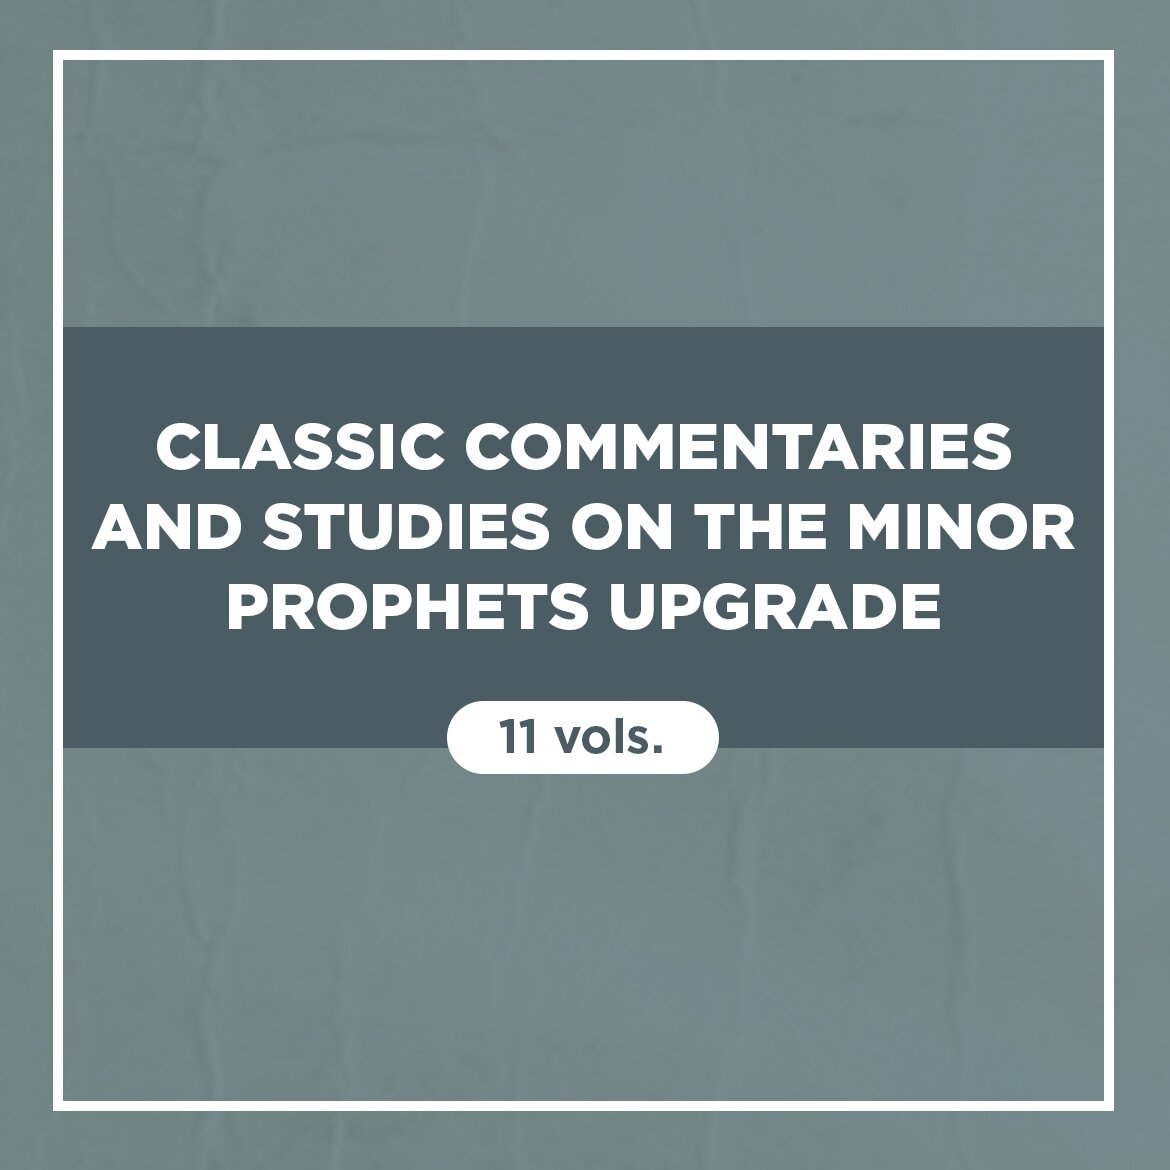 Classic Commentaries and Studies on the Minor Prophets Upgrade (11 vols.)